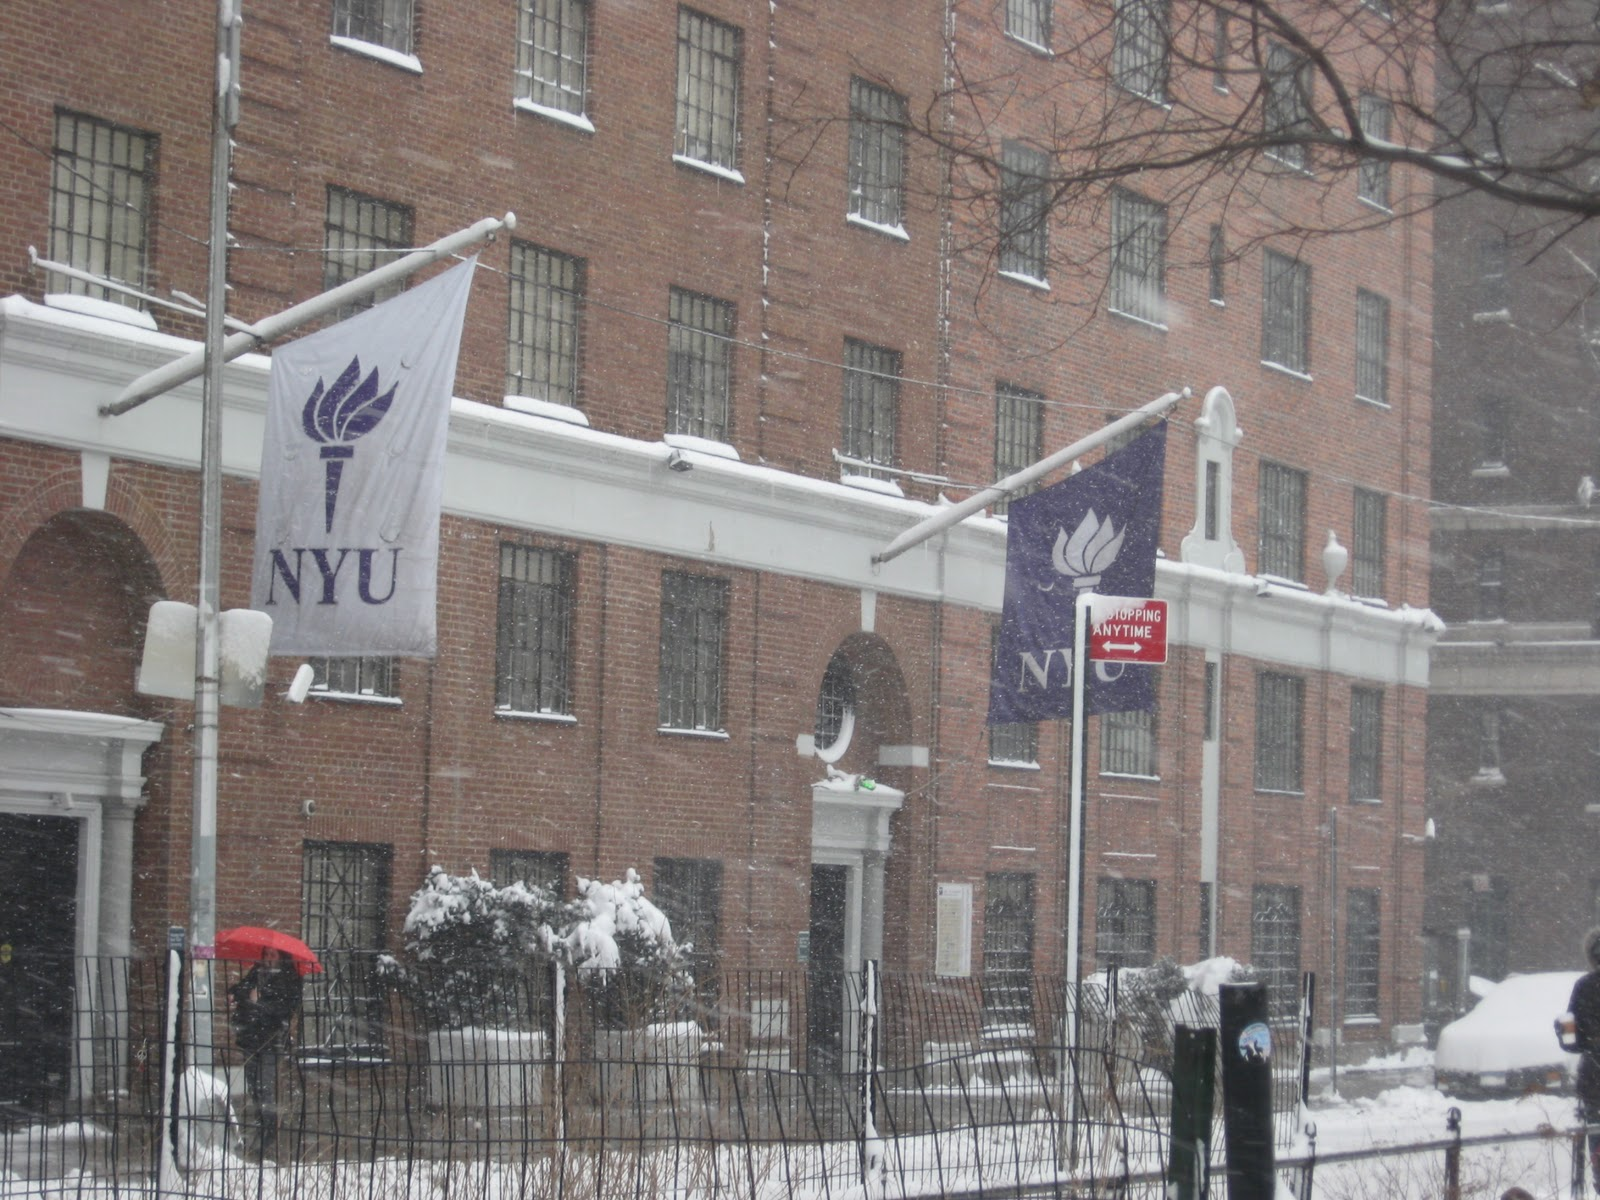 Nyu Tisch School Of The Arts Location College Snapshots New York University